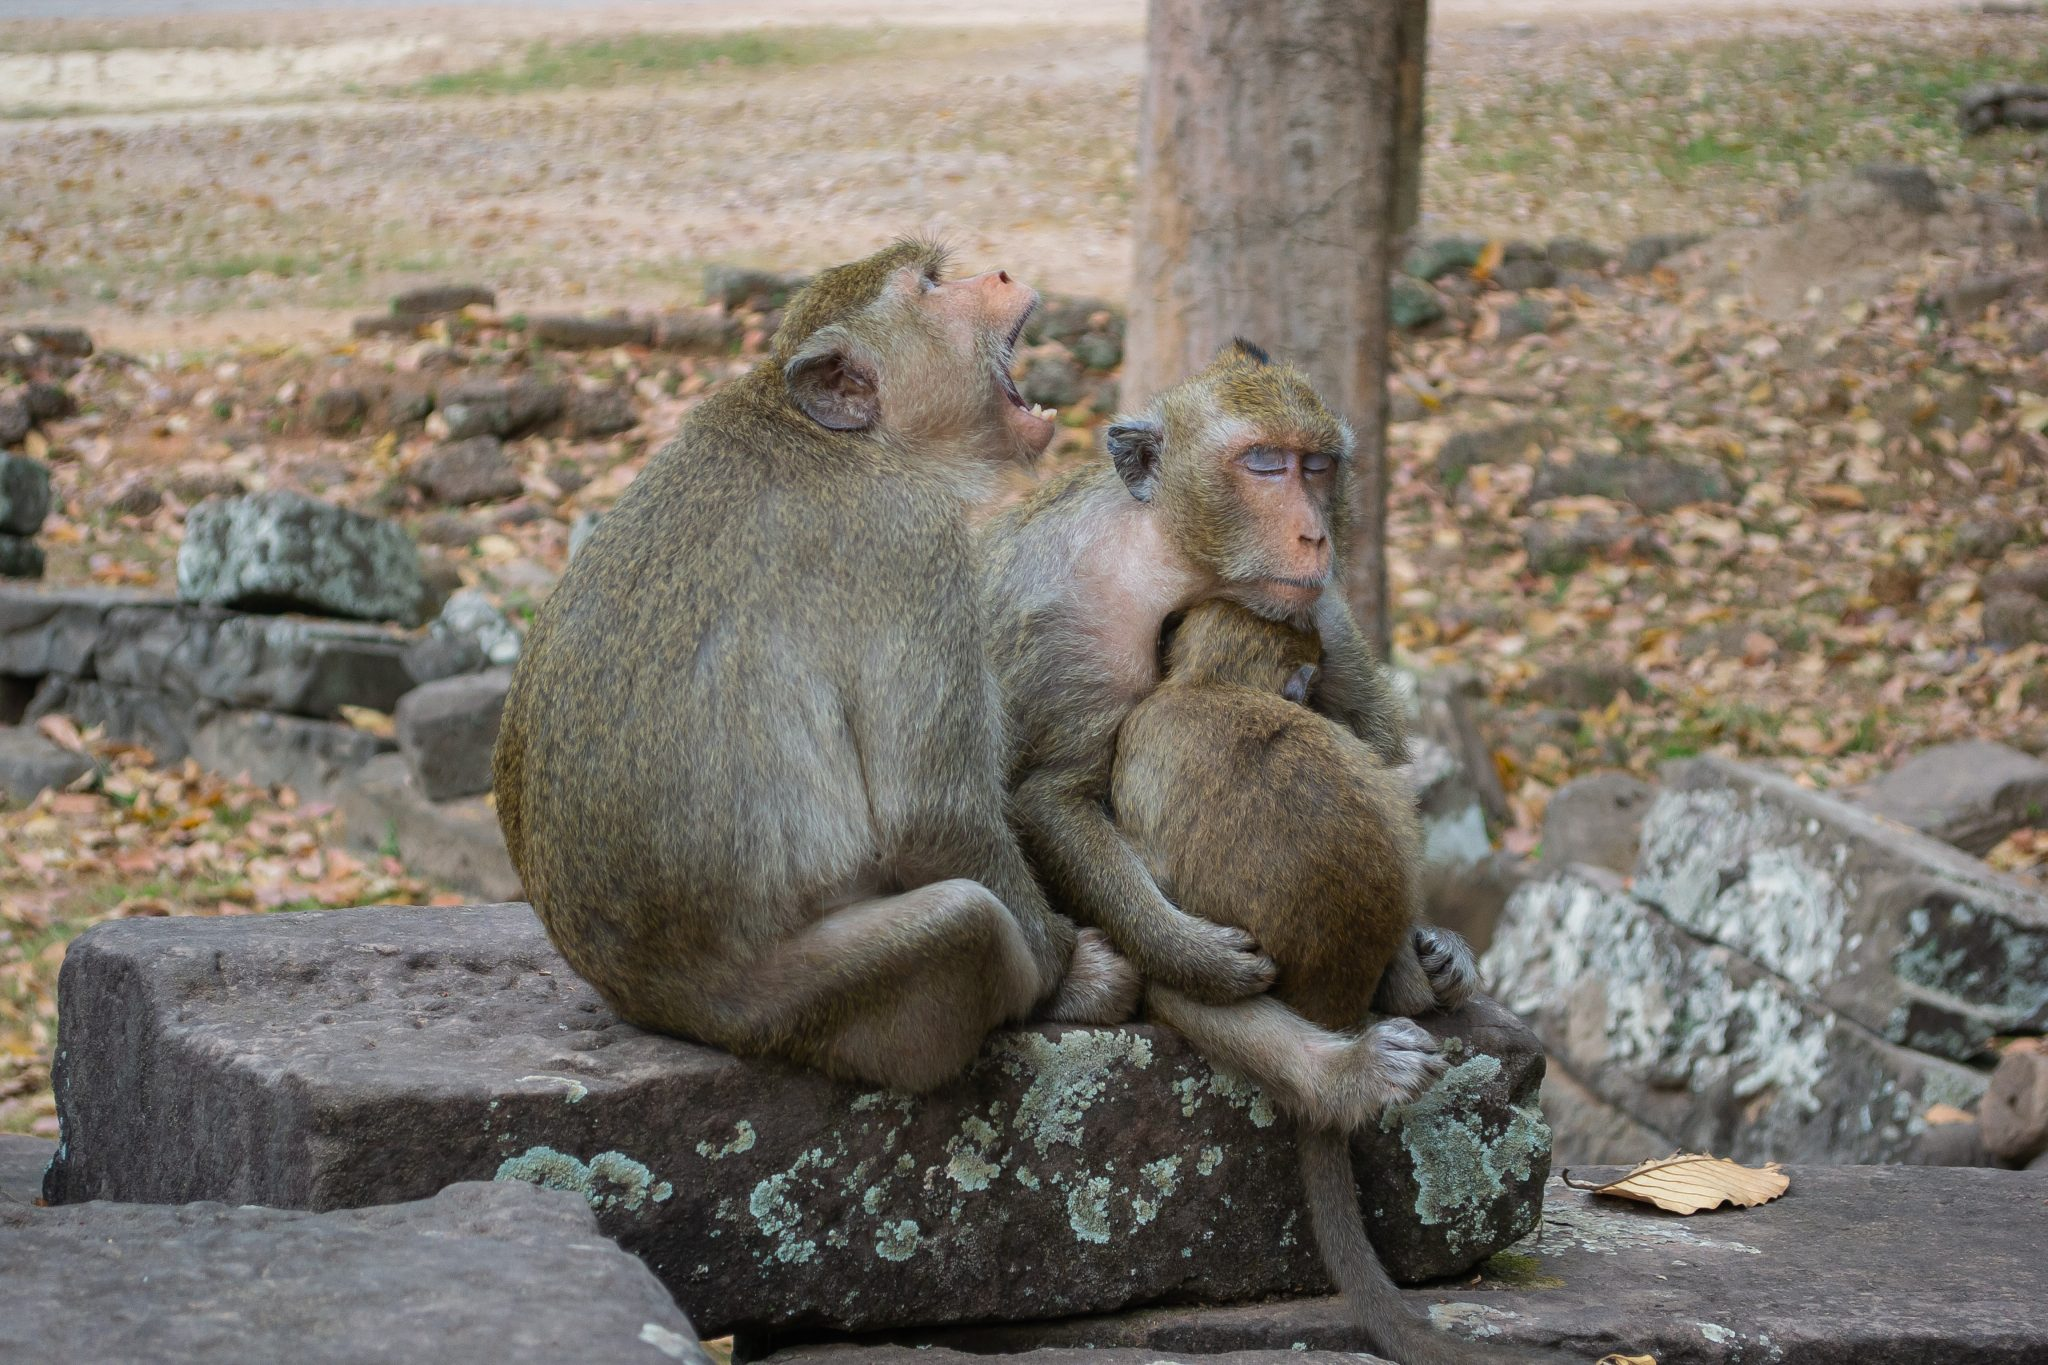 Activists Outraged After Canadian Companies Purchase Over 1000 Monkeys for Animal Testing